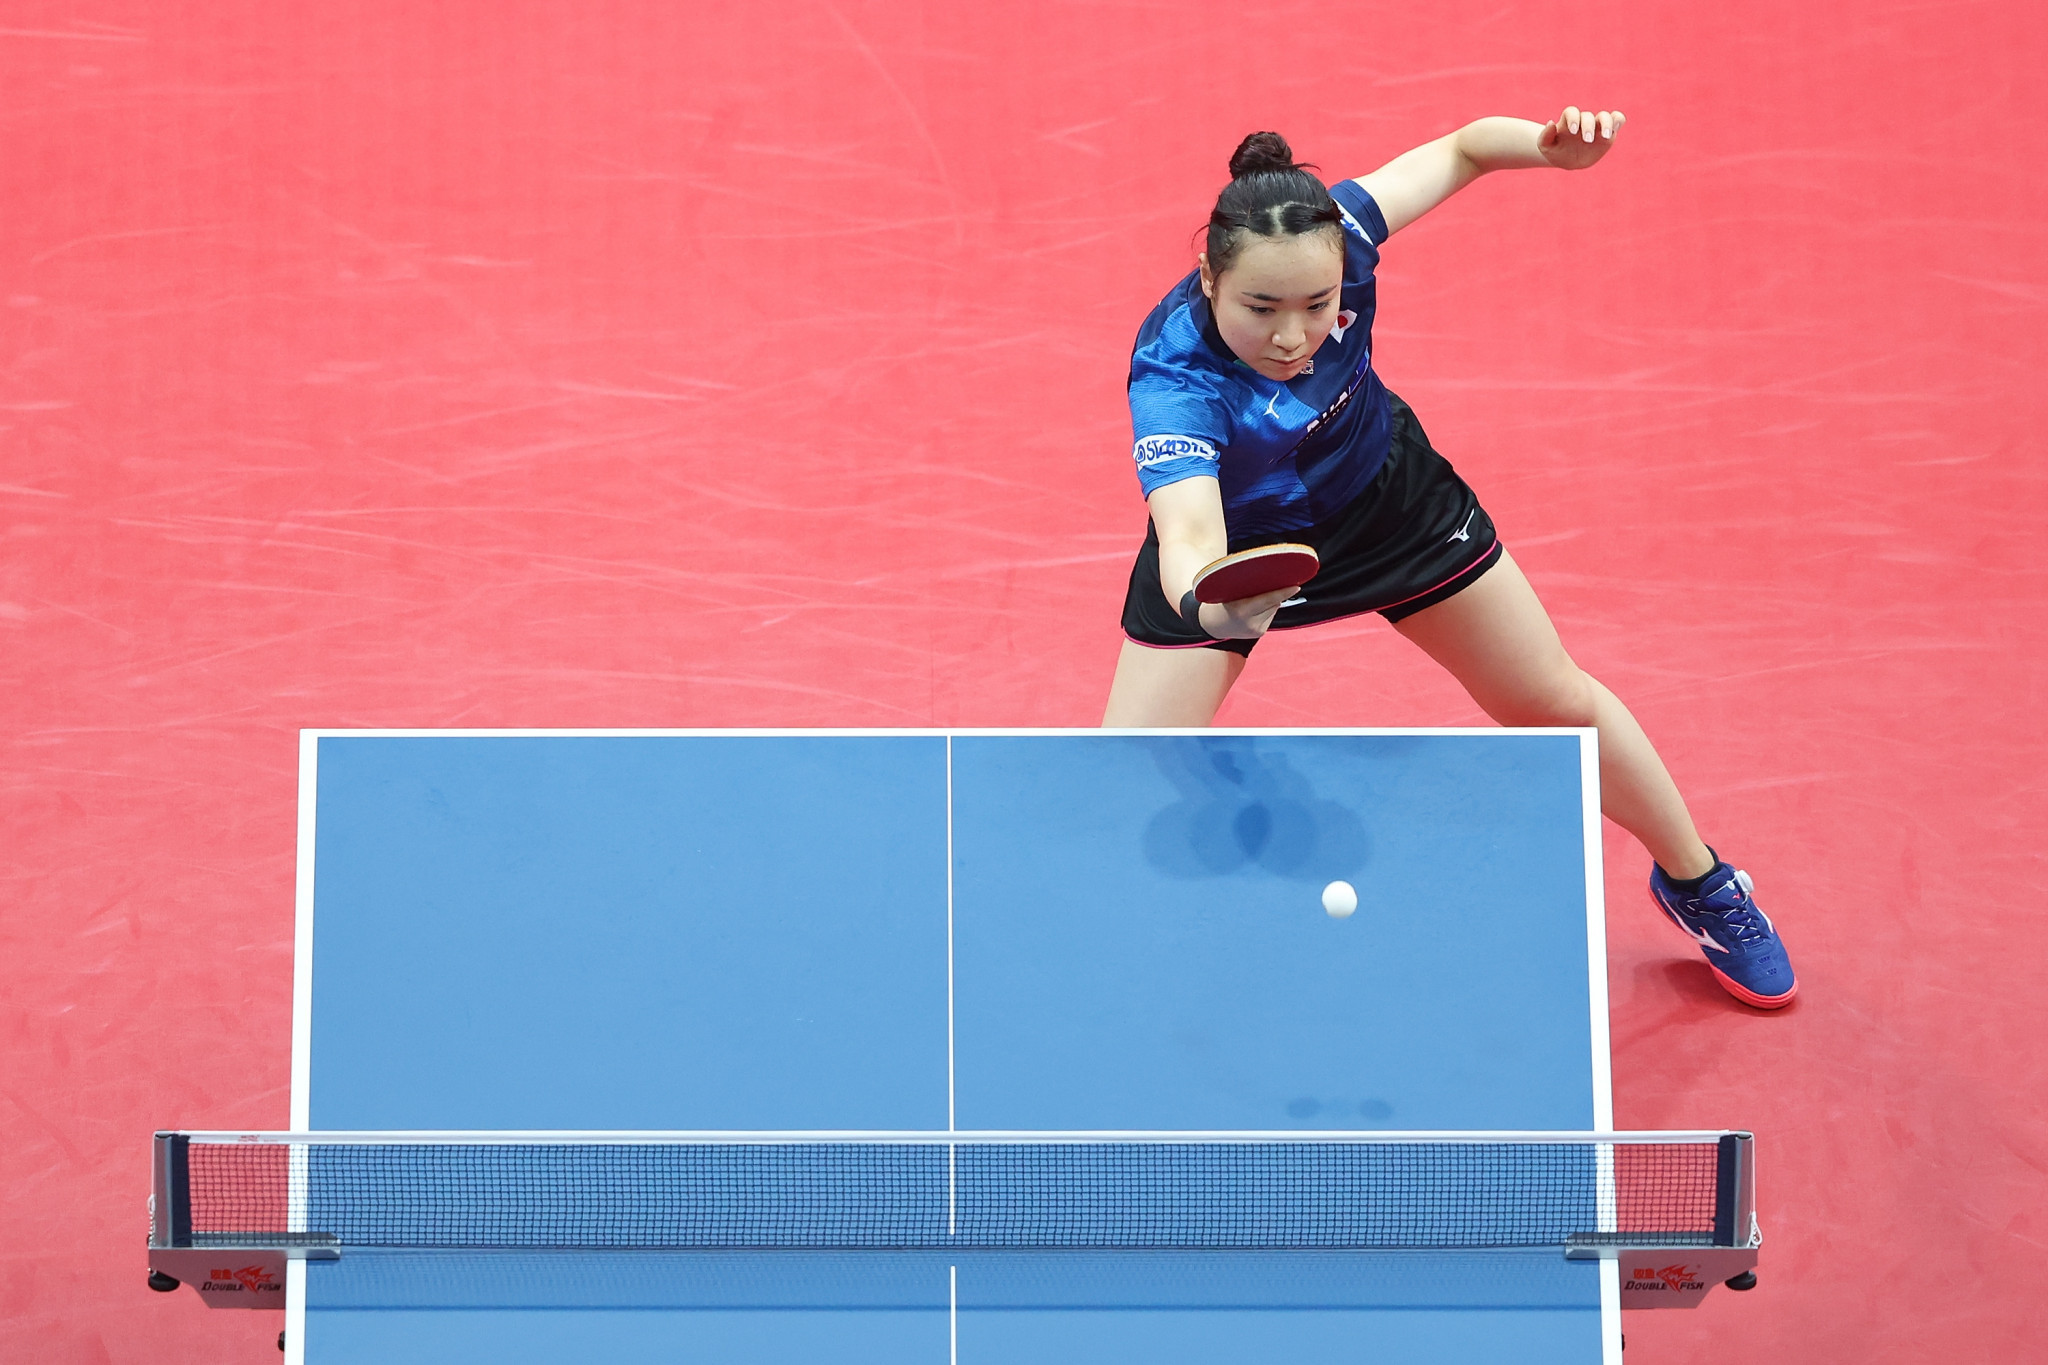 Mima Ito will play Japanese compatriot Hina Hiyata in the women's singles final at the WTT Contender in Doha ©Getty Images